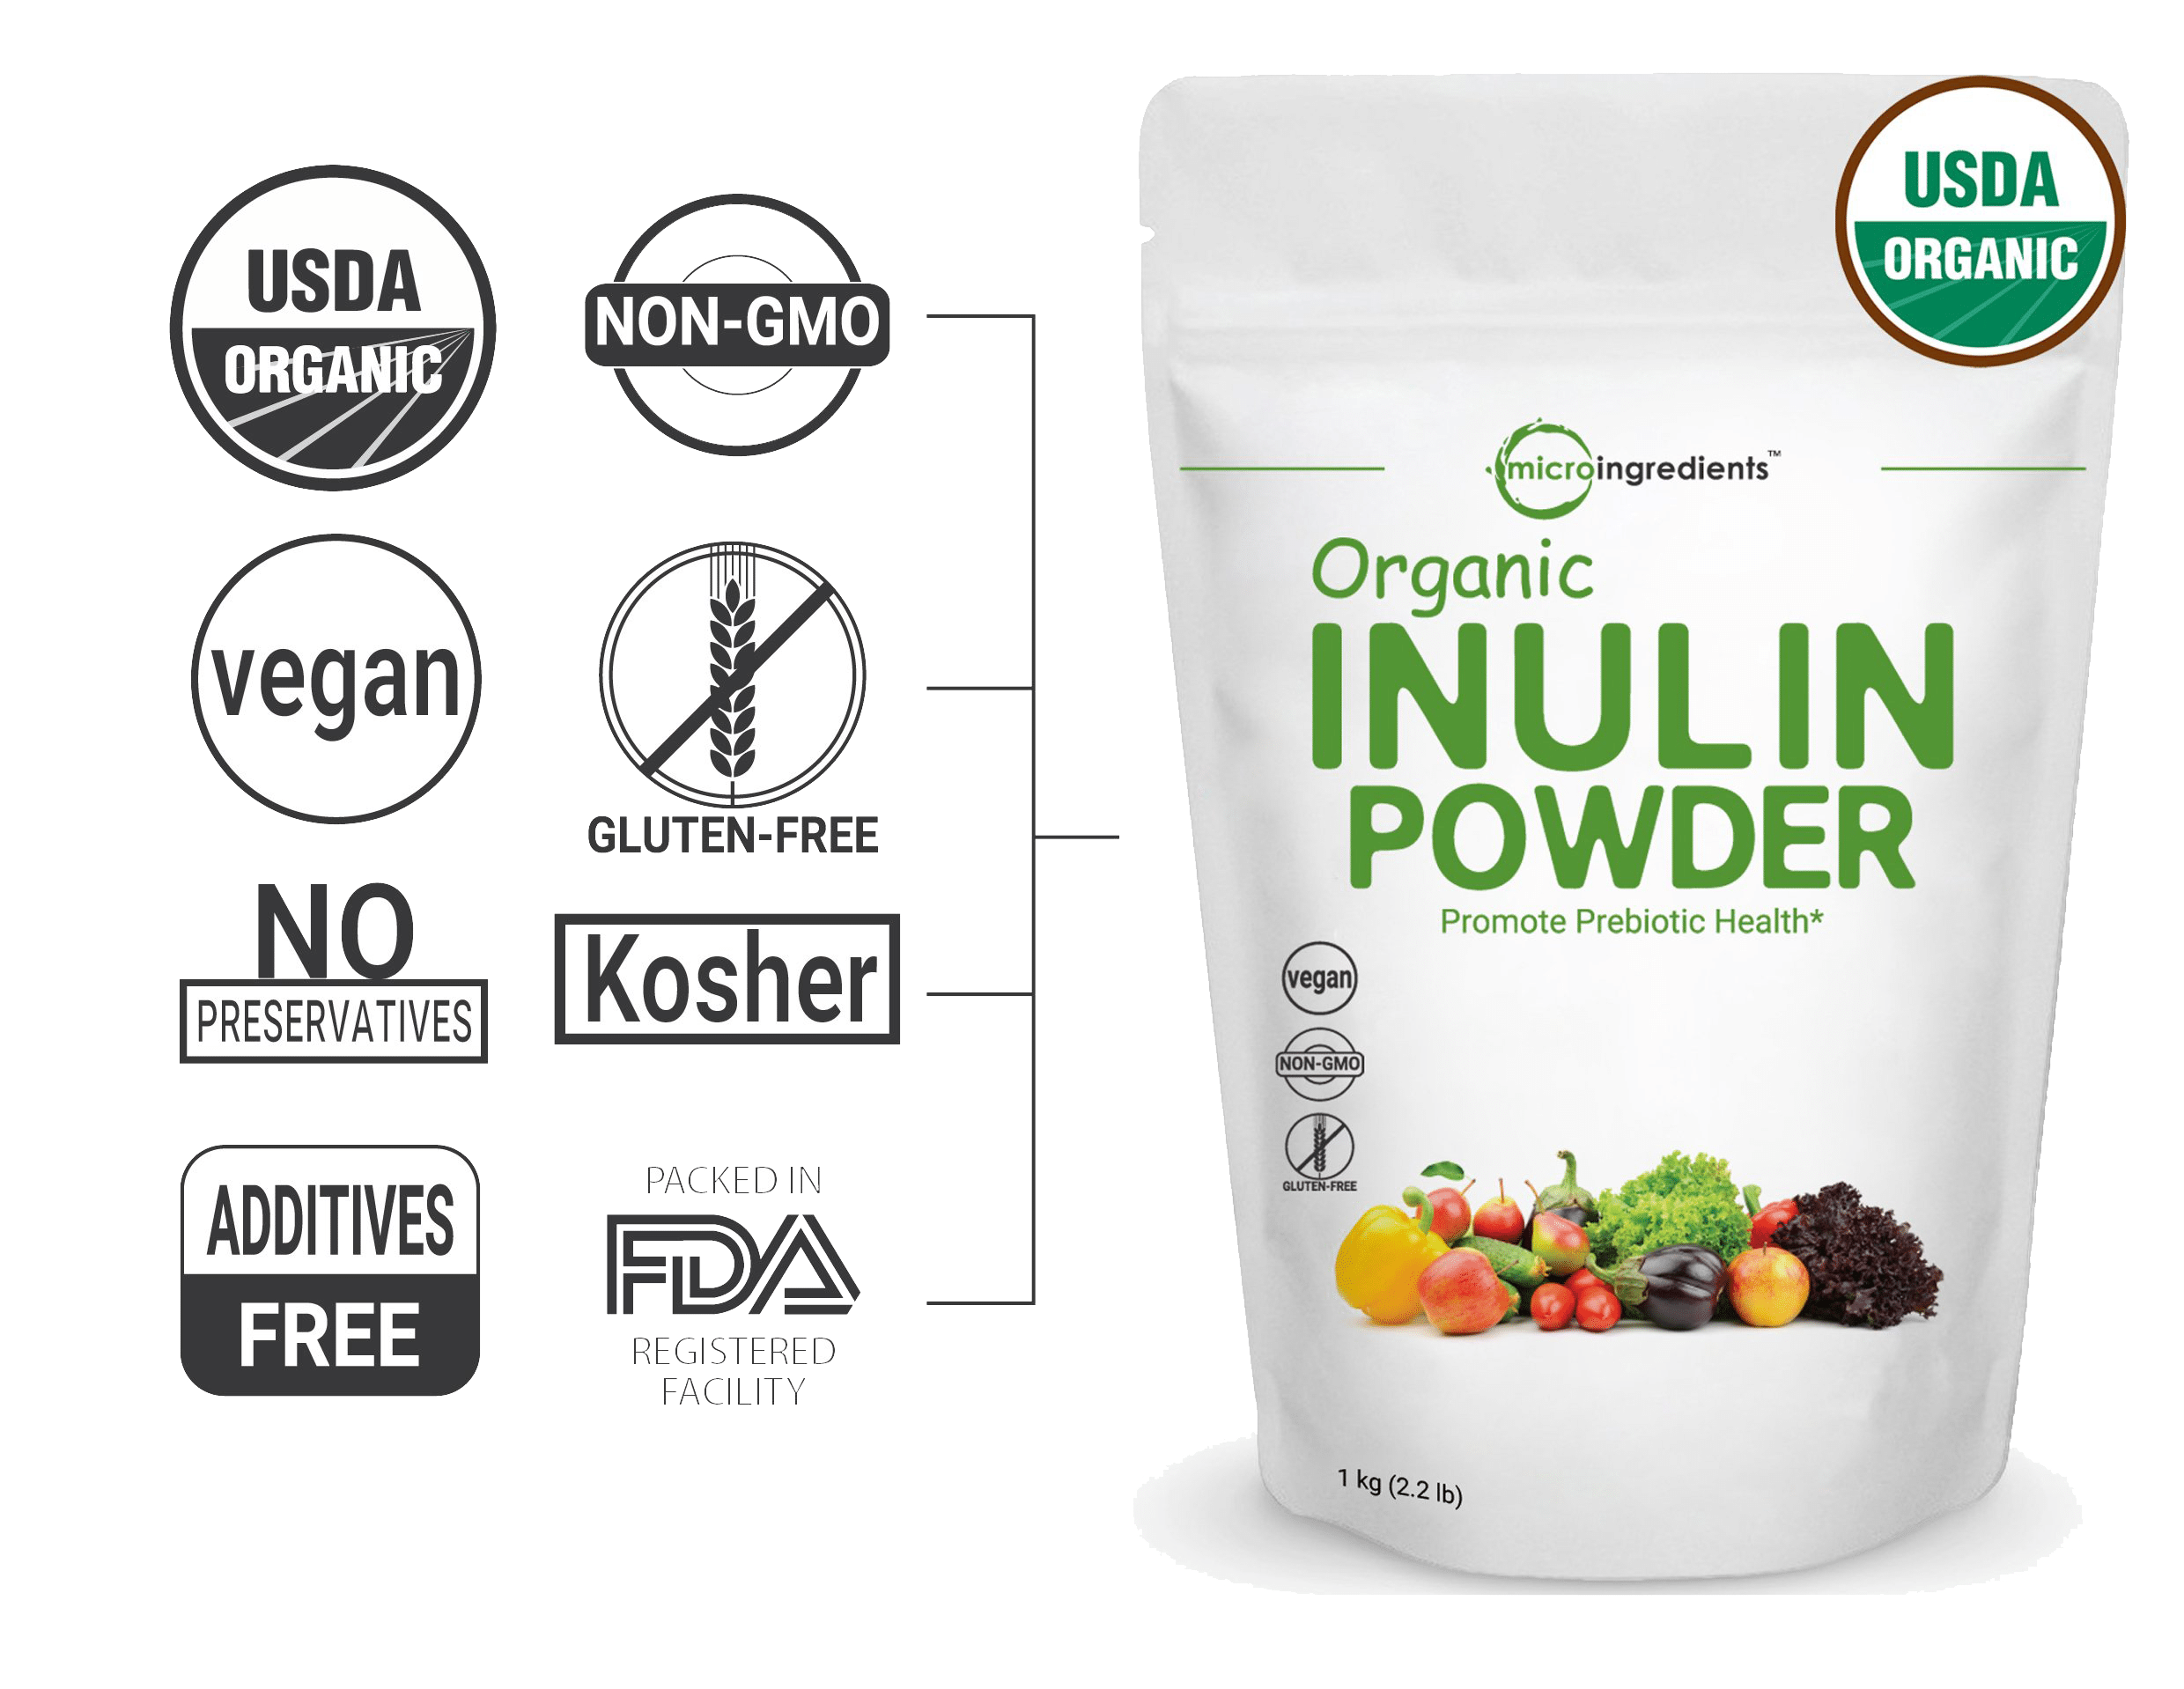 MicroIngredients Organic Inulin Powder